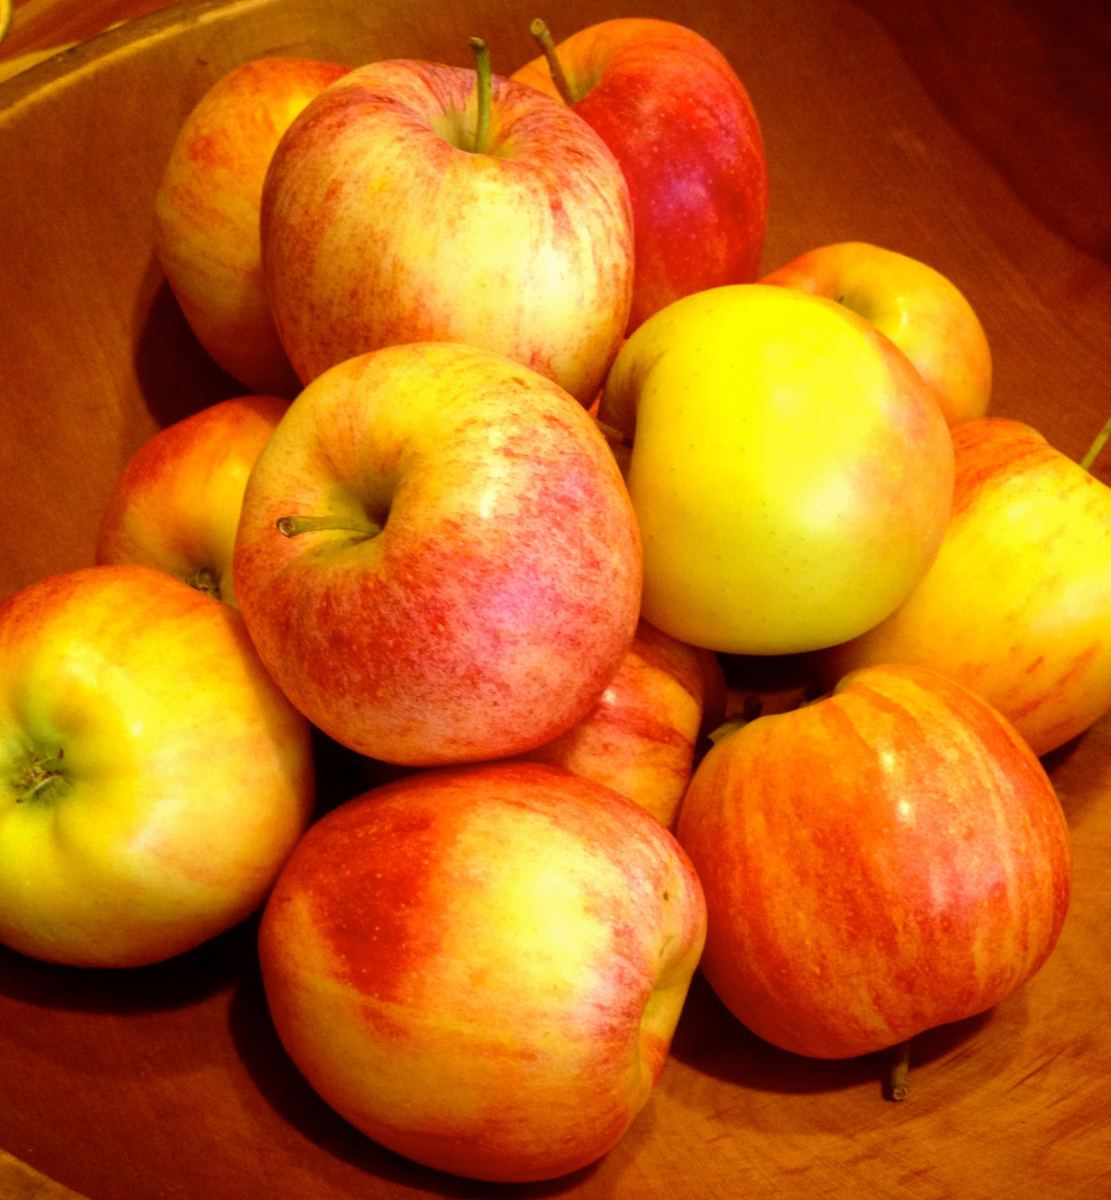 Apples and hot spiced cider are signs that Autumn is here!